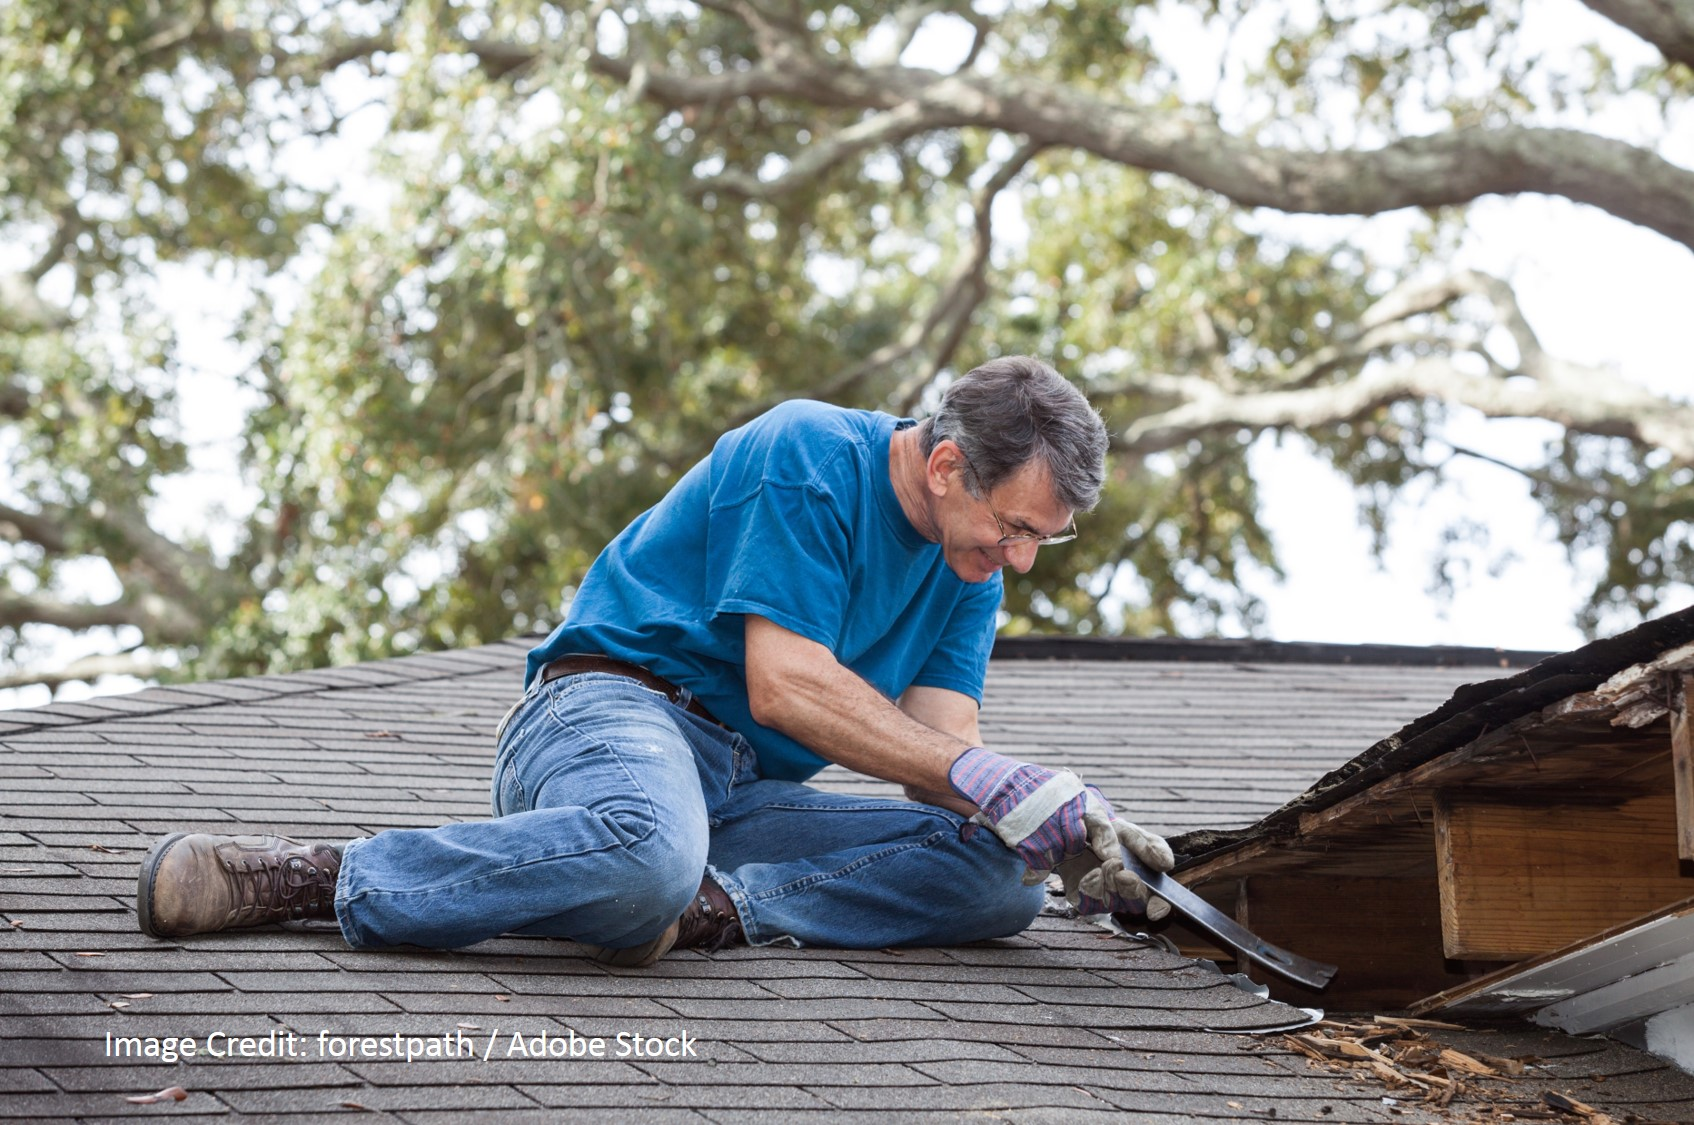 Roof flashing repair is sheet metal repair for joints, edges and breaks in a roof